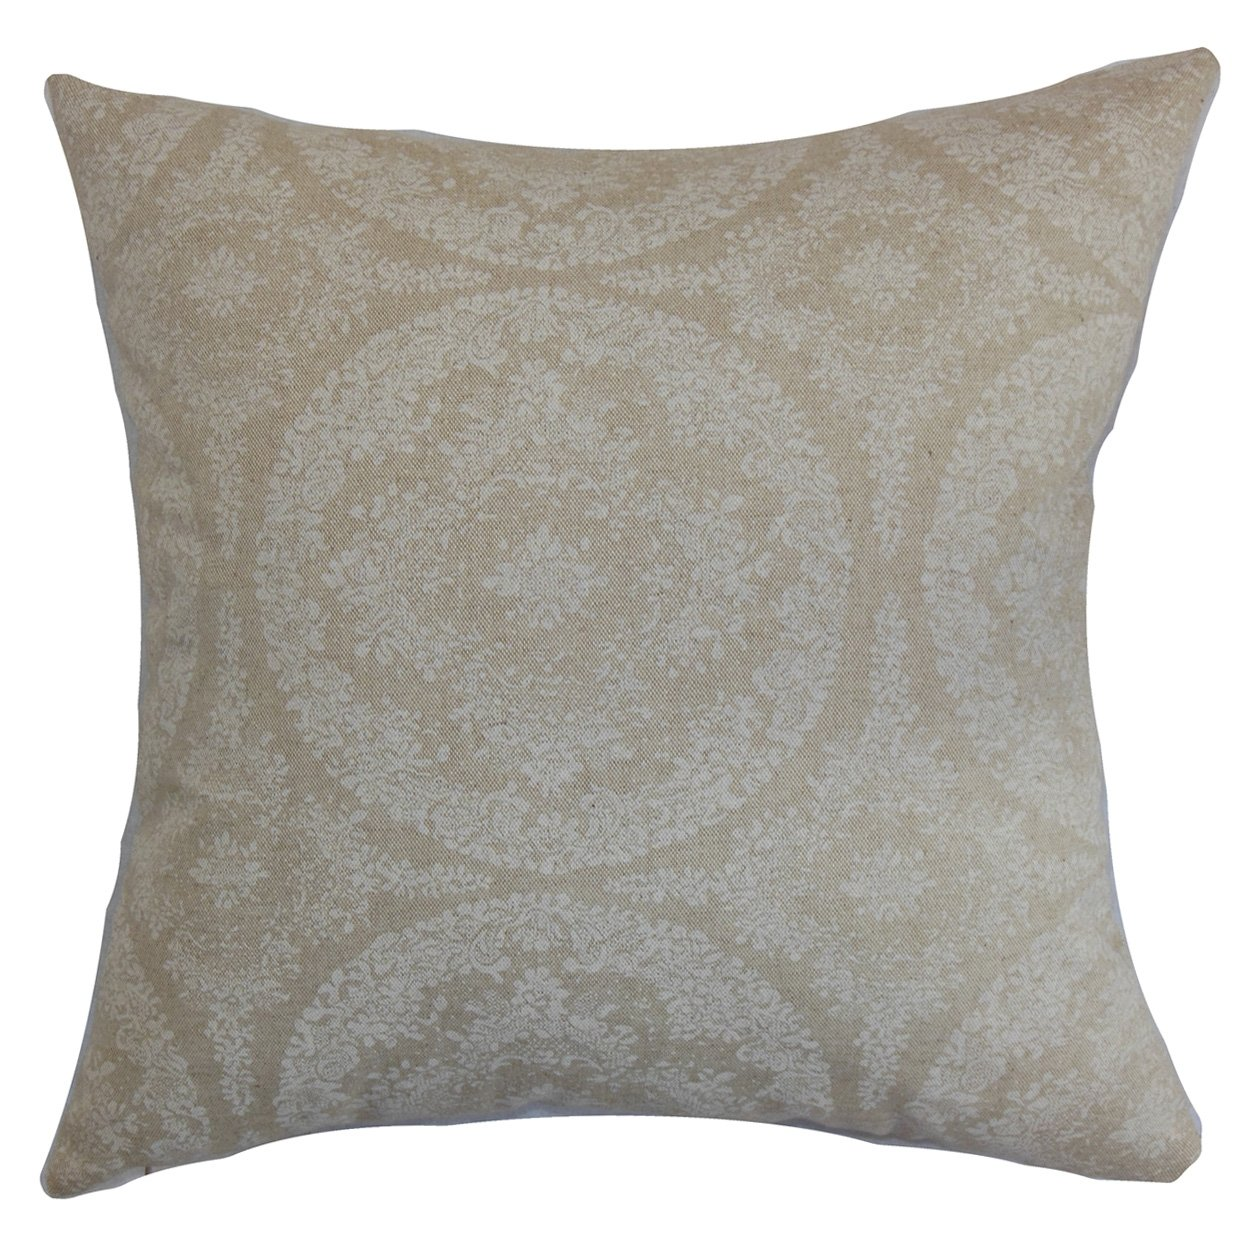 Amazon.com: the pillow collection ailigandi Floral almohada ...